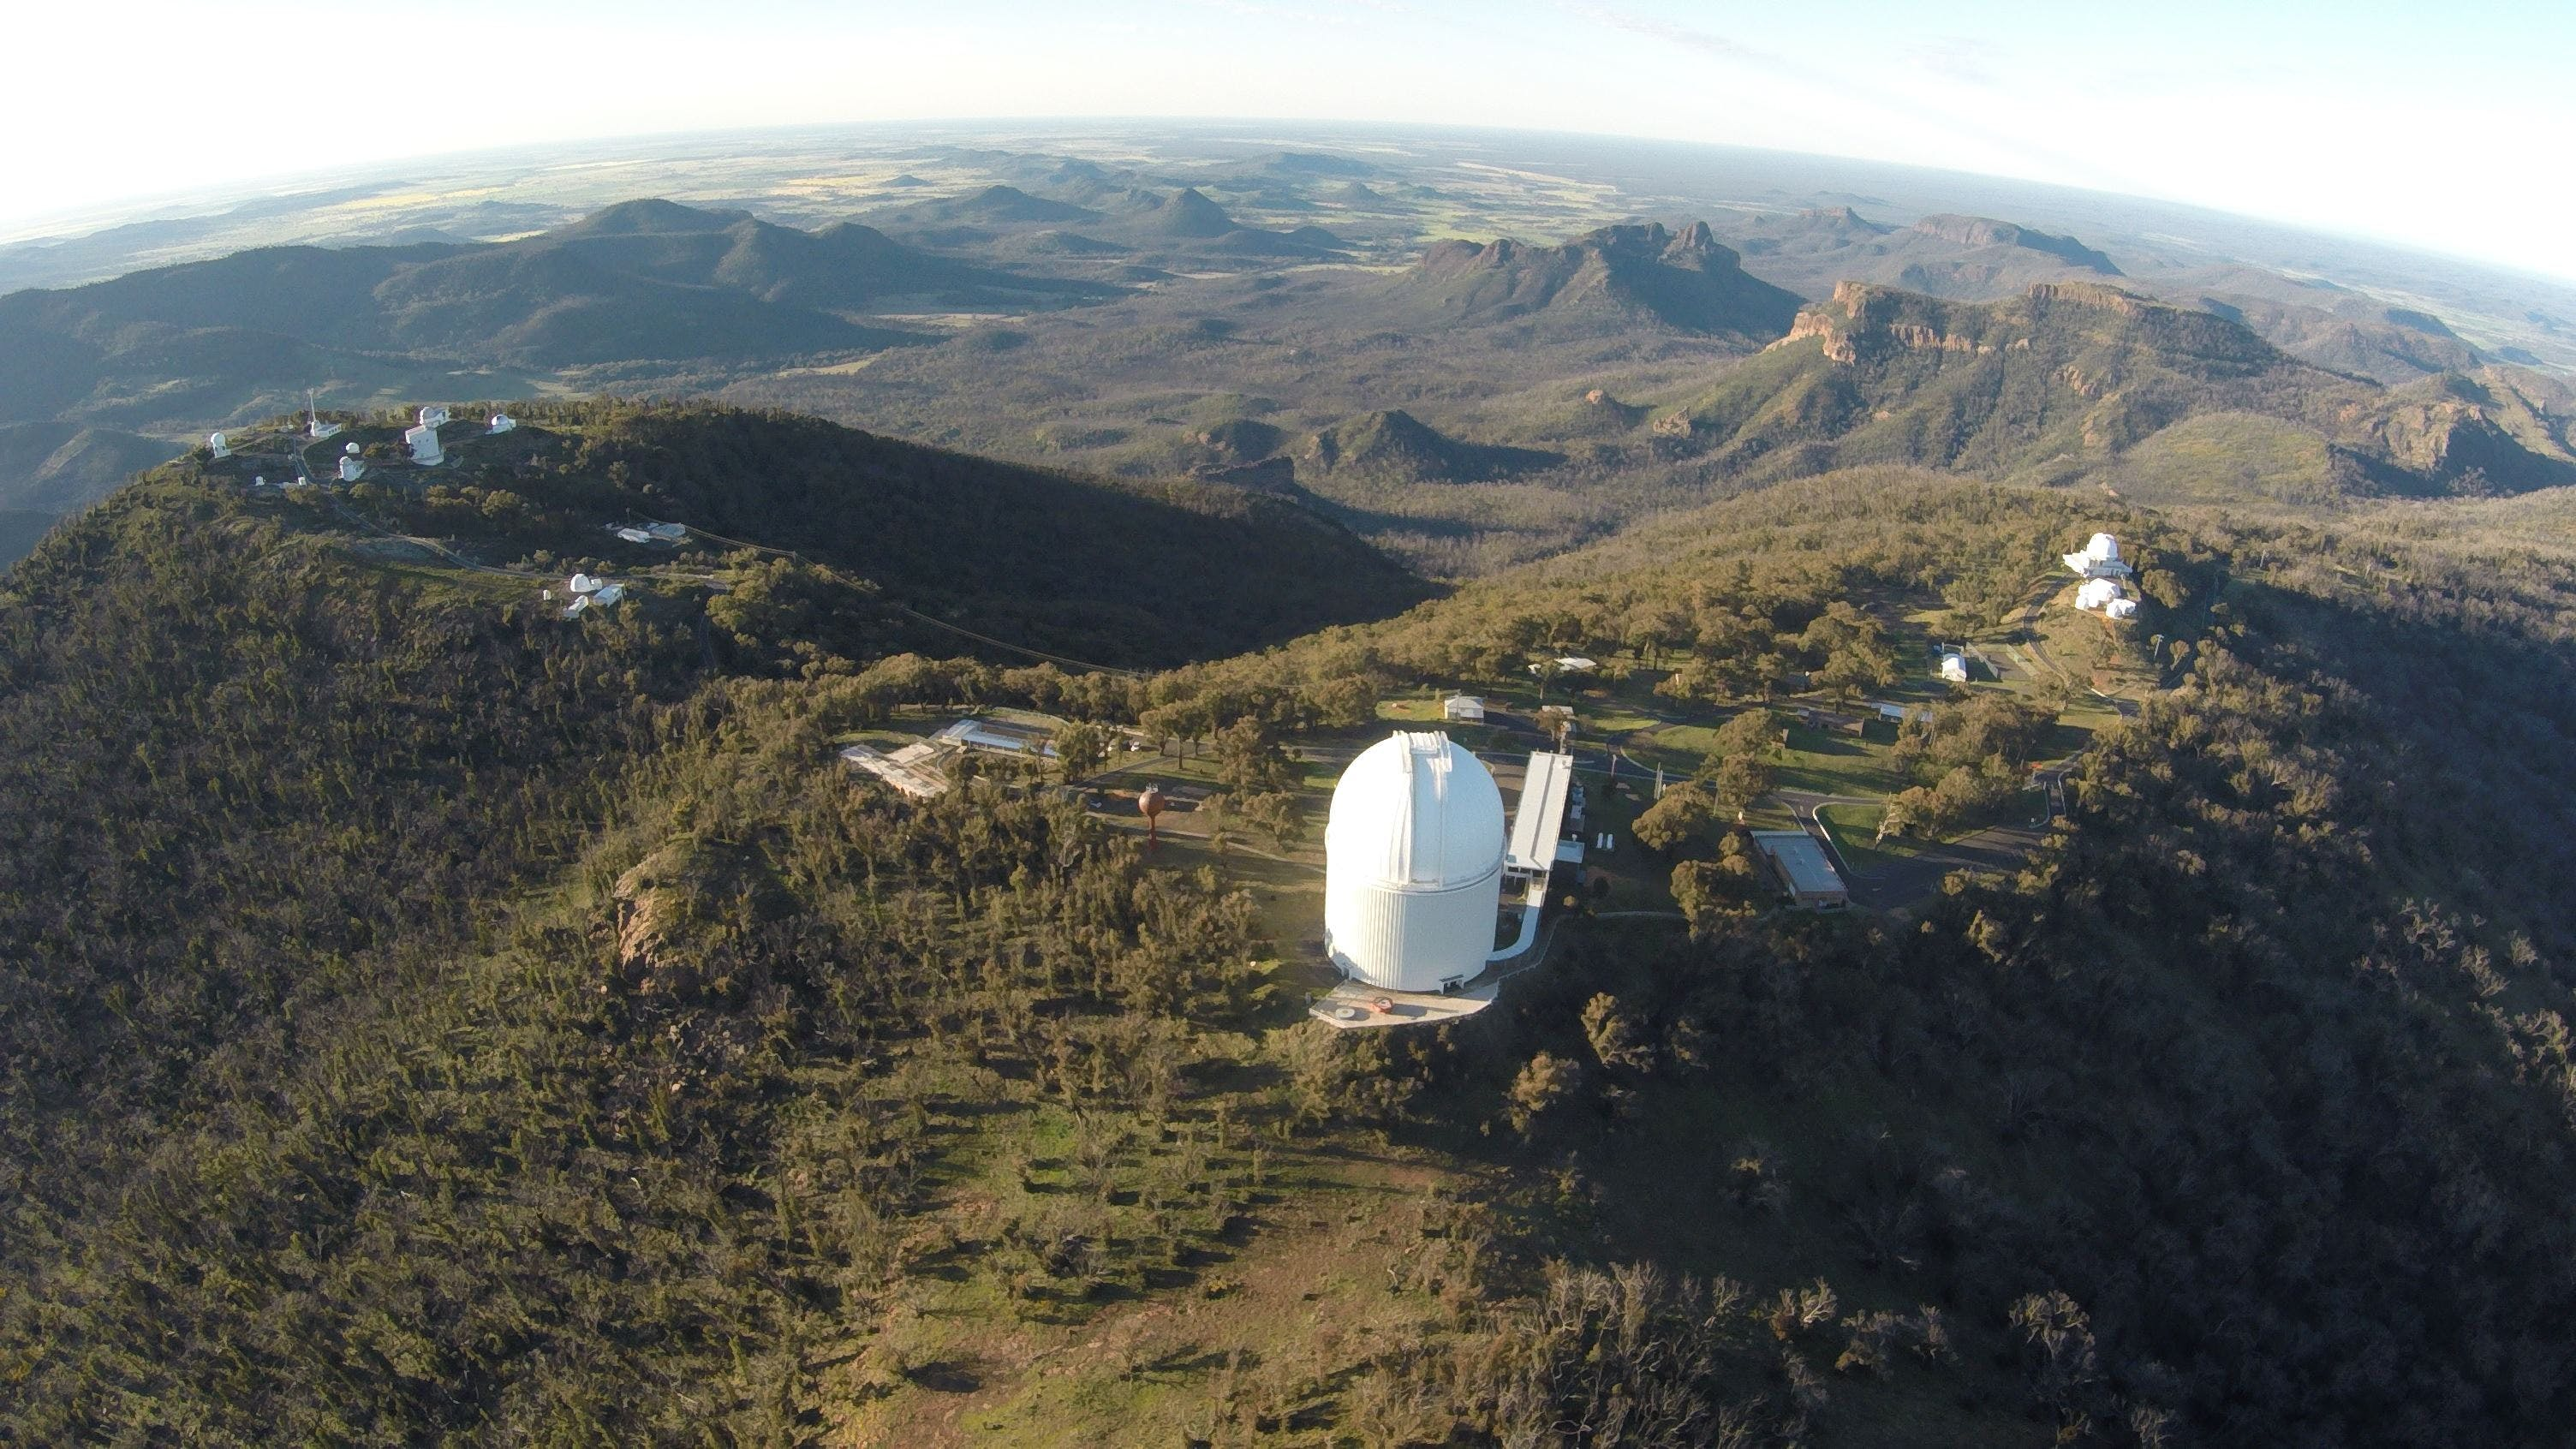 Siding Spring Observatory - Accommodation Airlie Beach